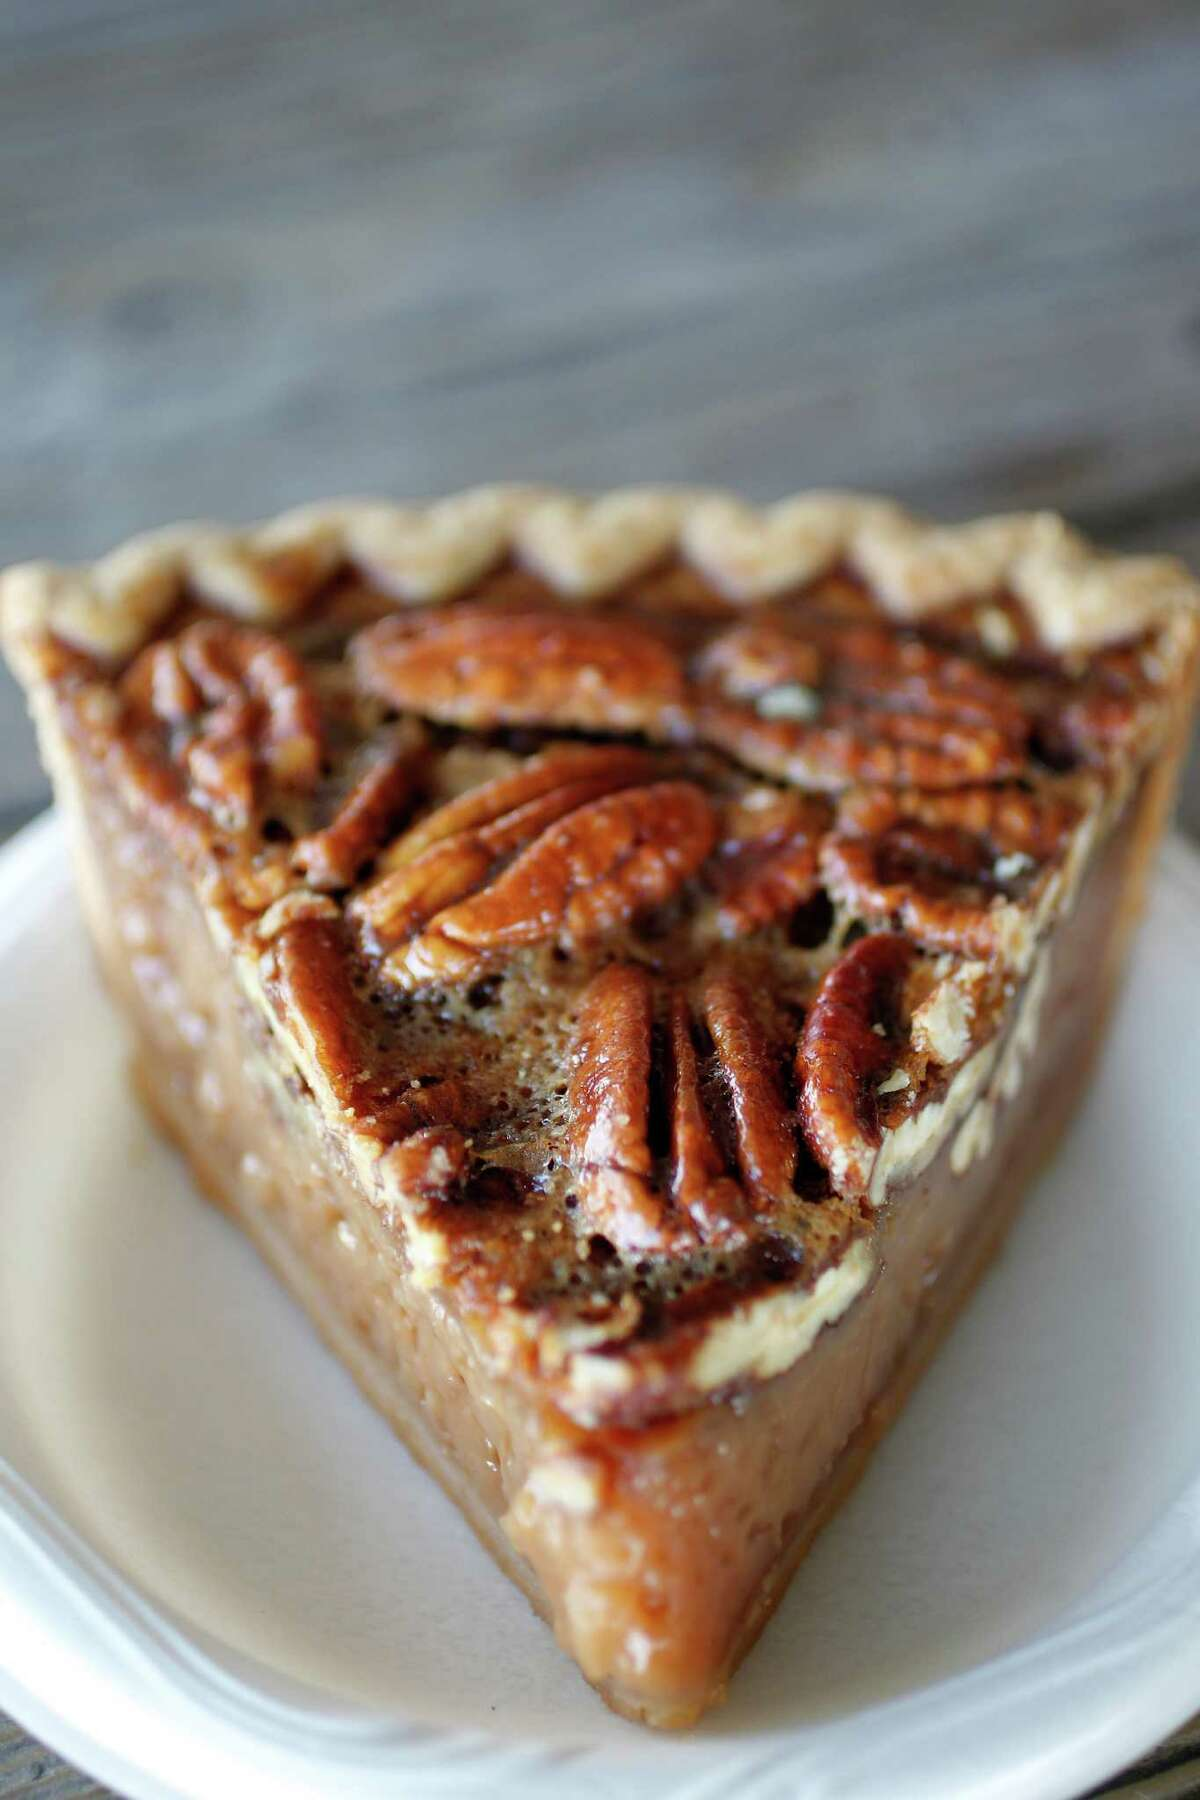 Goode Co. (Various locations) Head to a Goode concept, including Armadillo Palace, Goode Co. Texas Bar-B-Q, Goode Co. Seafood and Goode Co. Taqueria, for your fix of Brazos bottom pecan pie. The nine-inch pie, which comes in a wooden box, is made with Texas pecans harvested from the banks of the Brazos River. Pictured: Brazos bottom pecan pie.